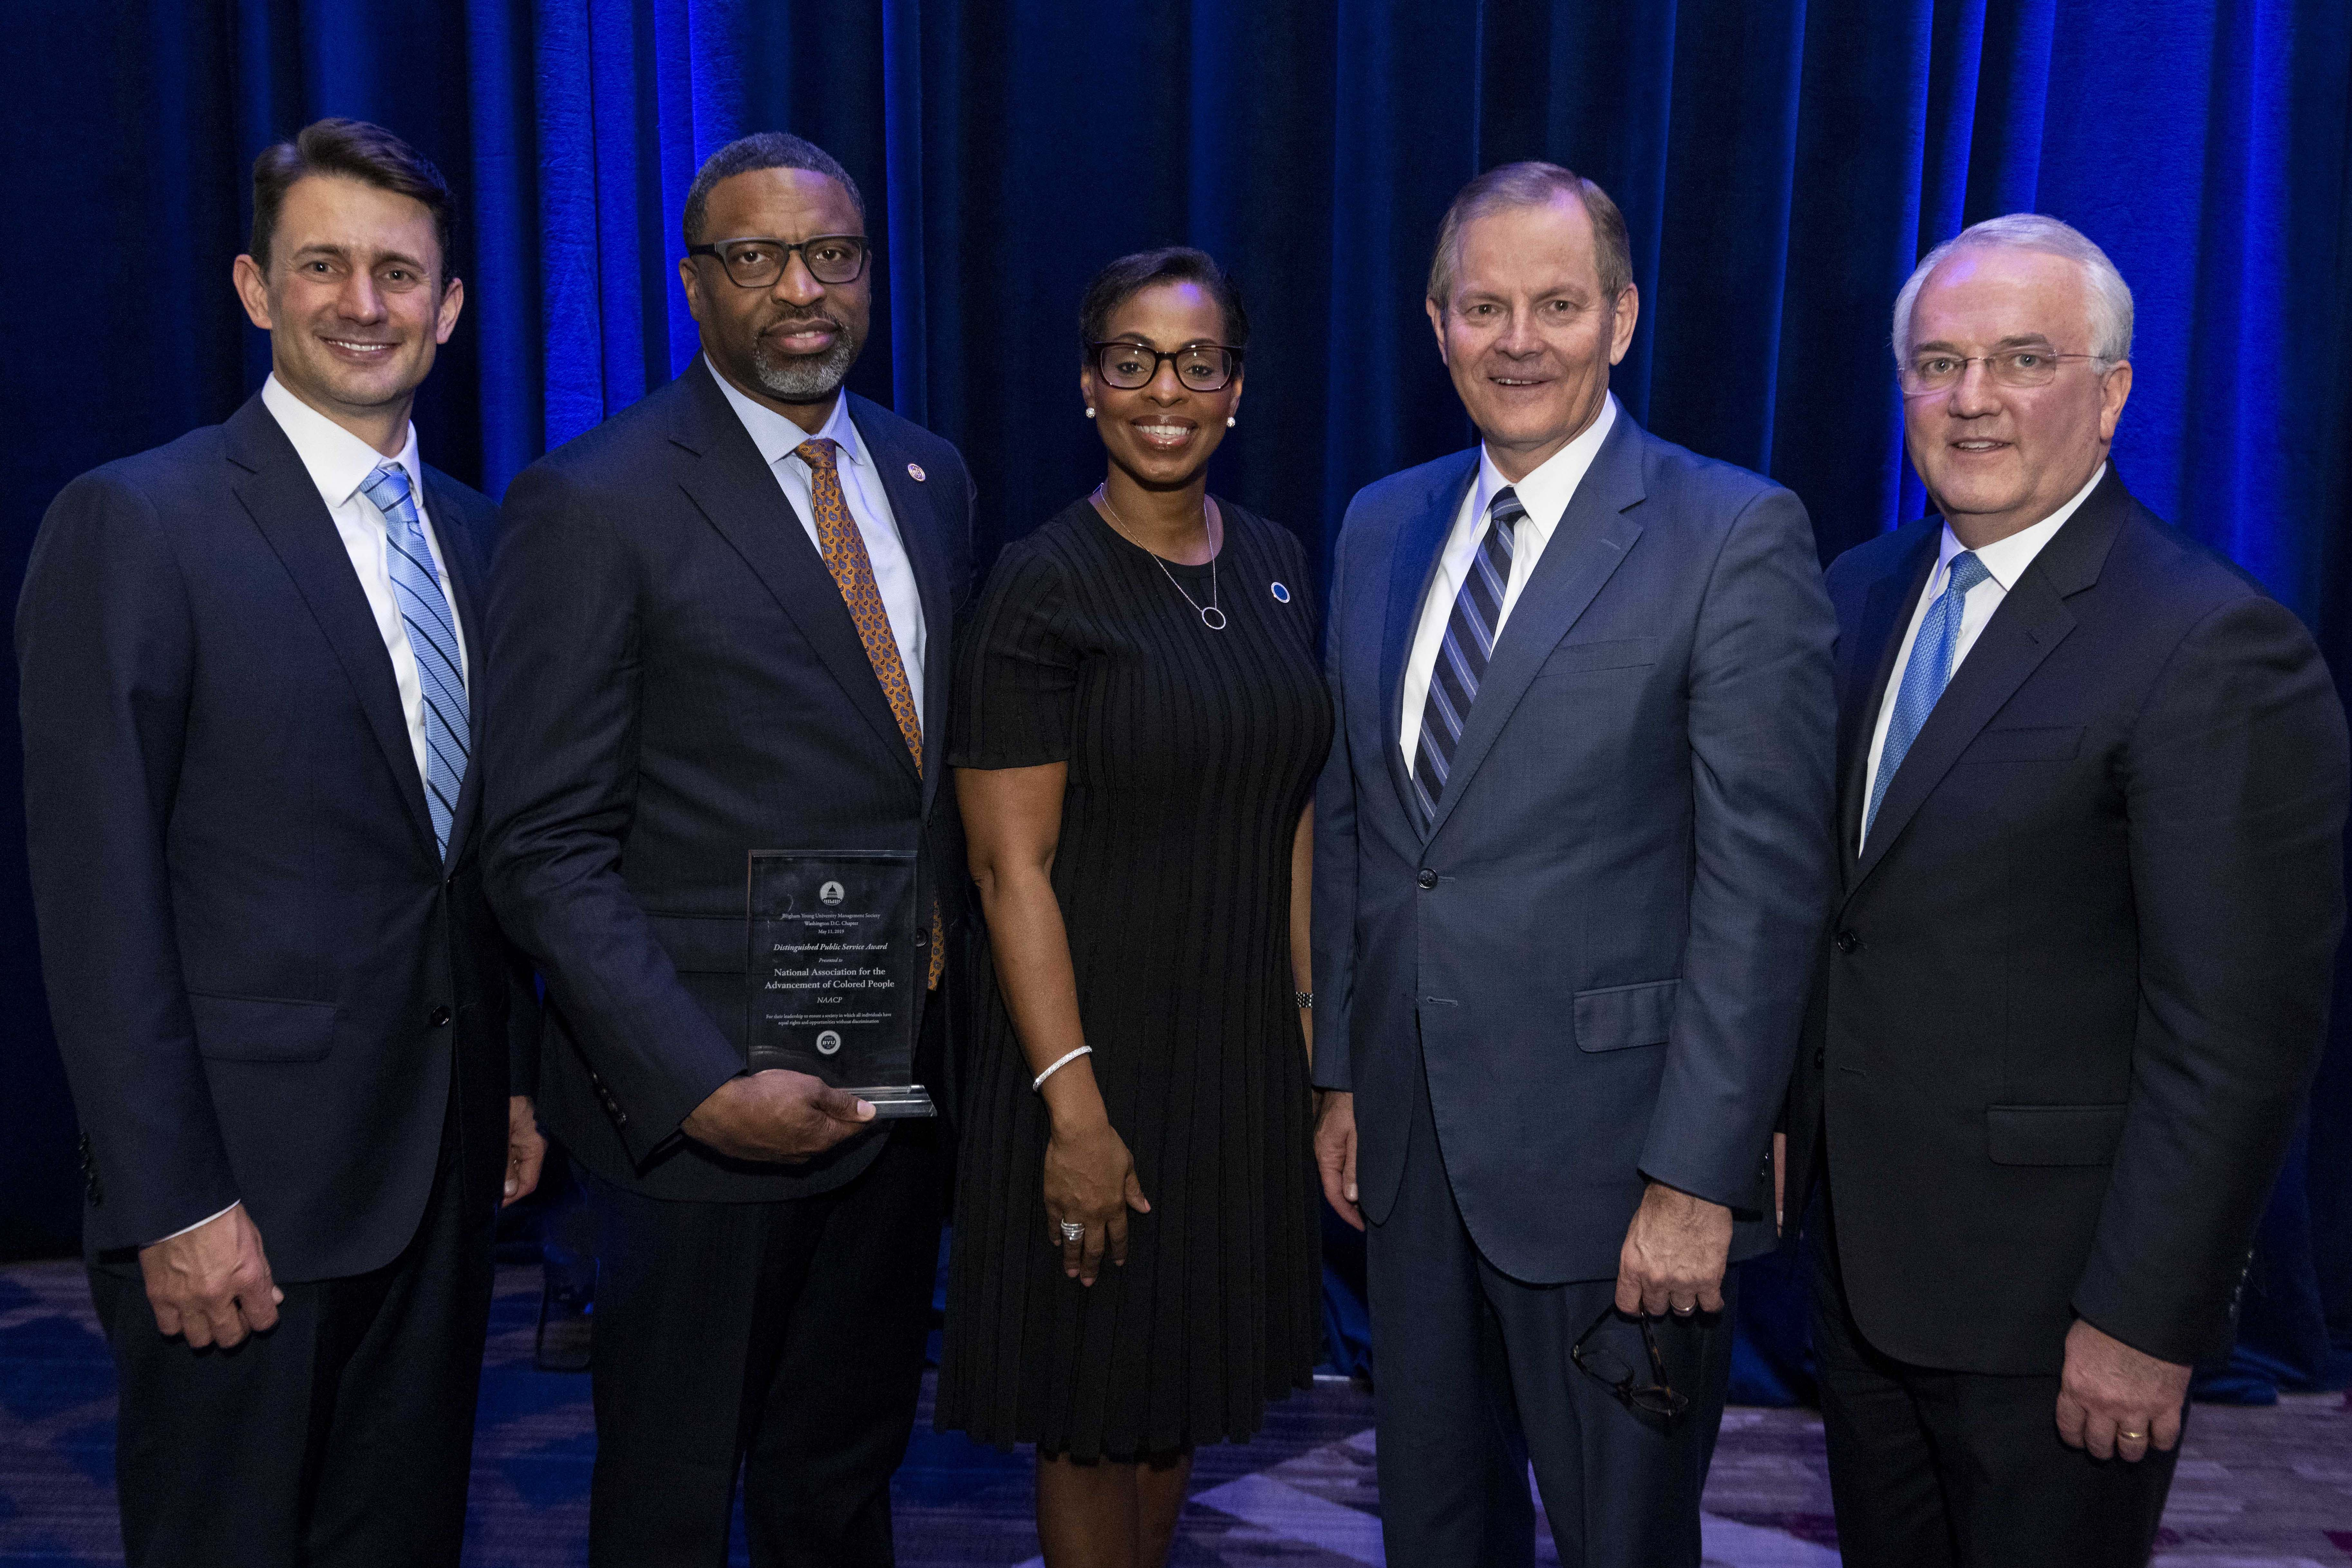 An award was presented to the NAACP in Washington, D.C., May 11, 2019. In the photo from left to right are: Mike Baird, BYU Management Society chapter president; NAACP President and CEO Derrick Johnson; Karen Boykin-Towns, NAACP vice chair; Elder Gary E. Stevenson and Elder Jack N. Gerard.